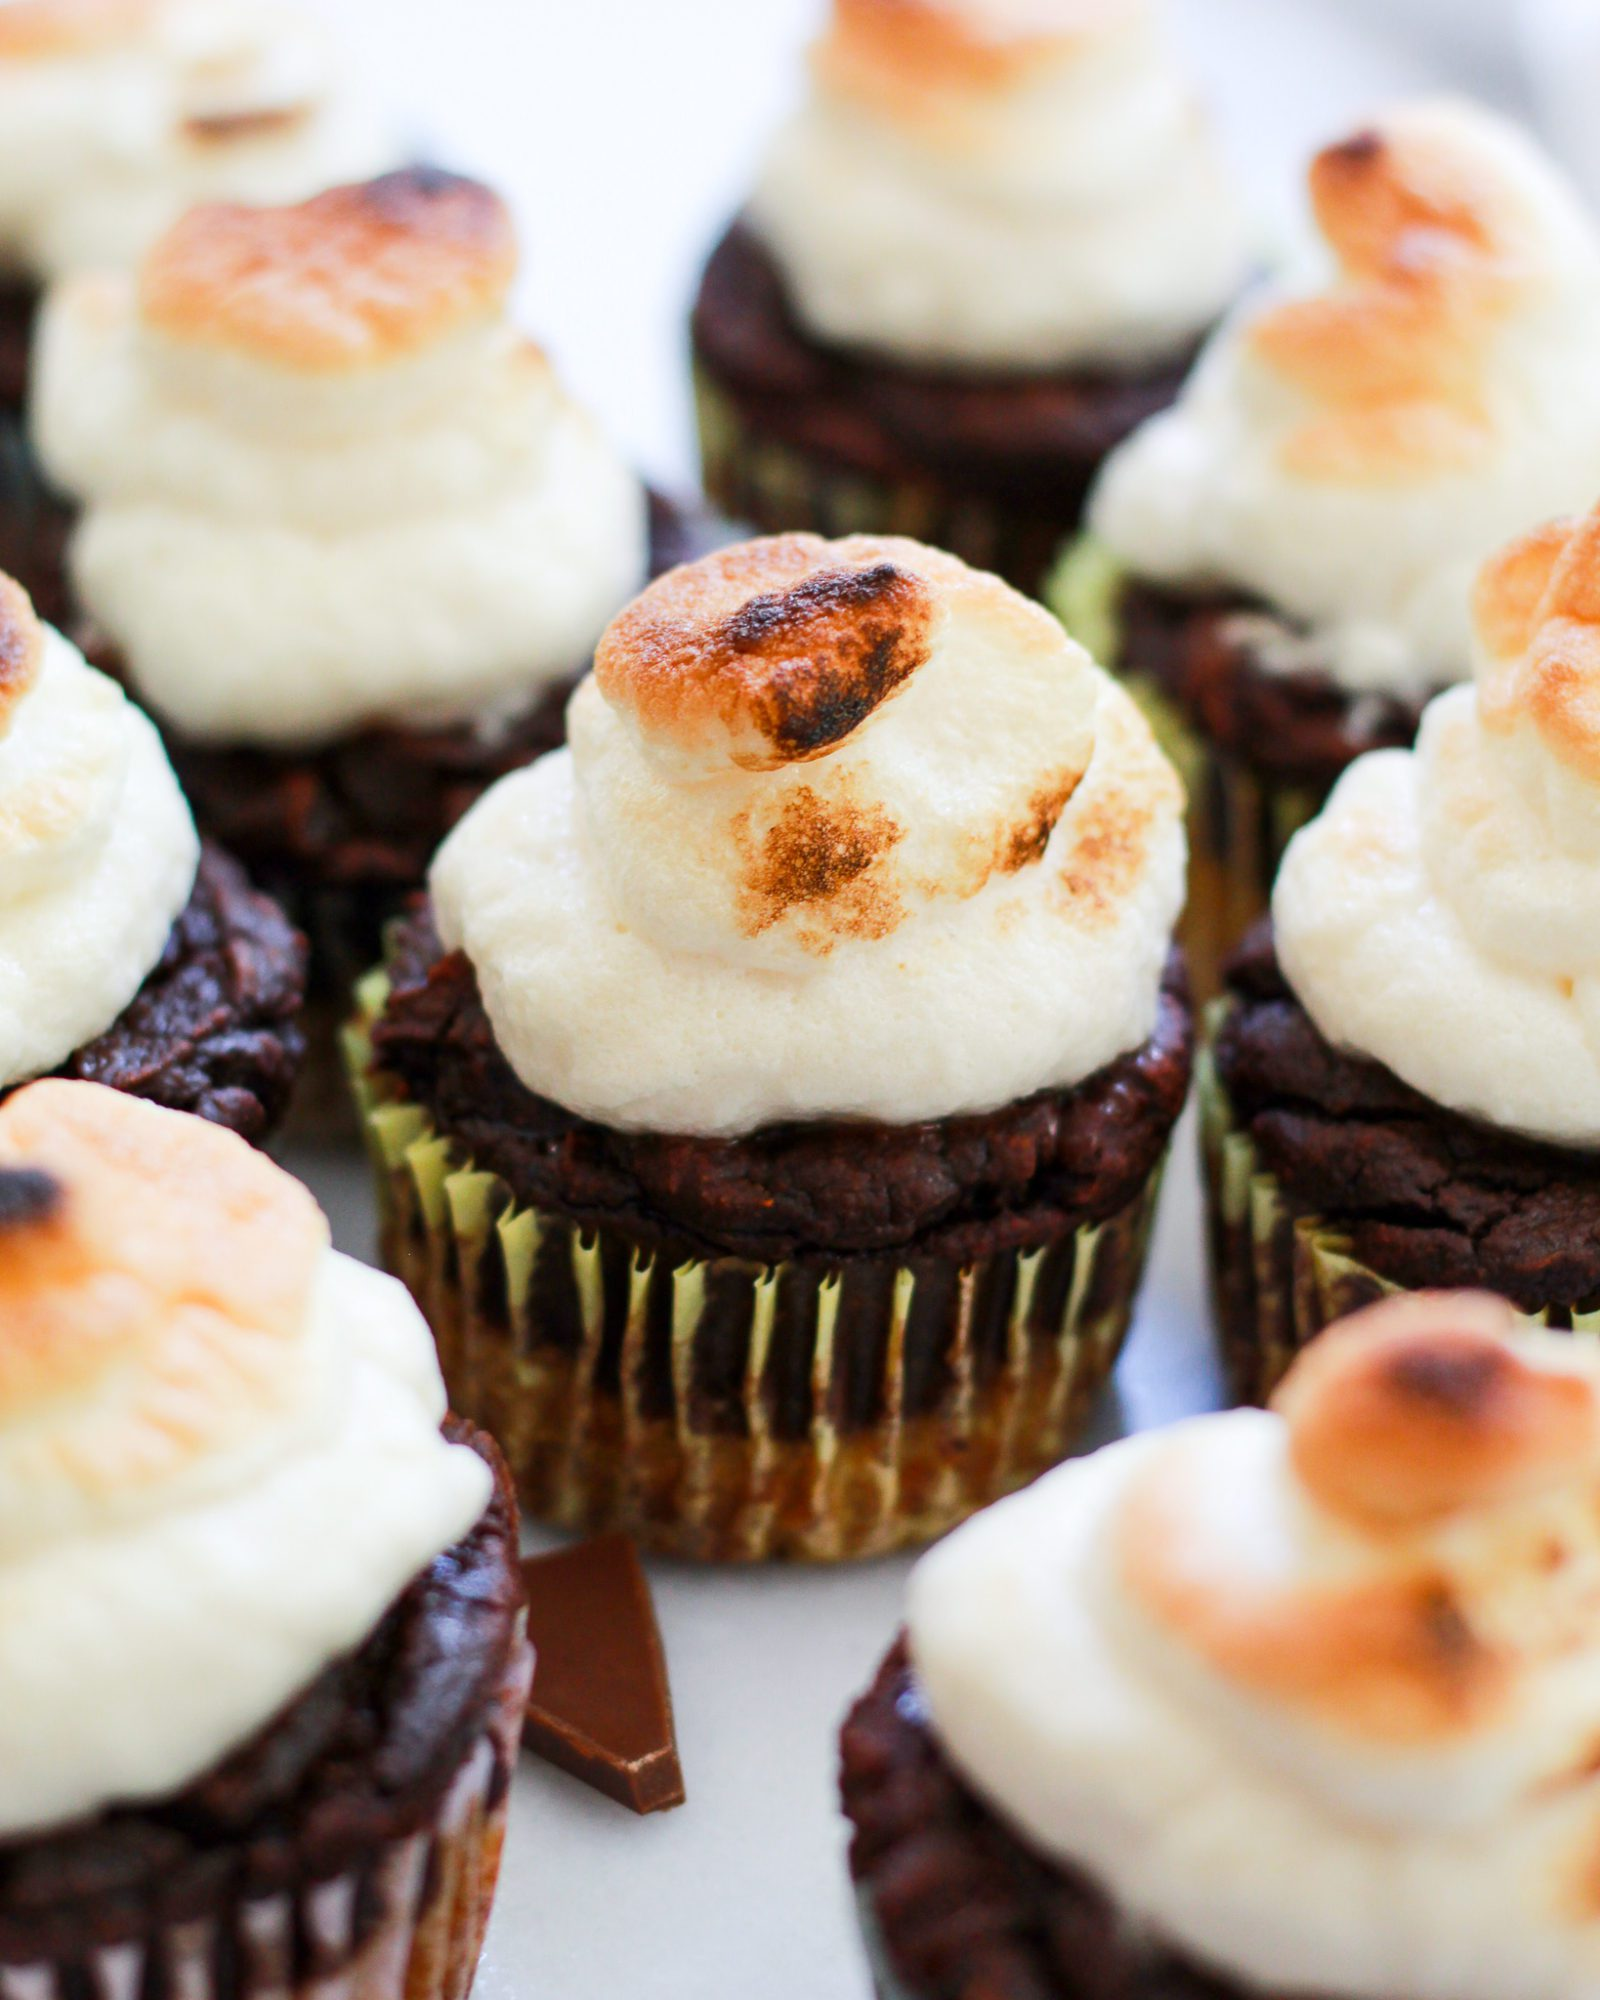 marshmallow frosting on s'mores cupcakes